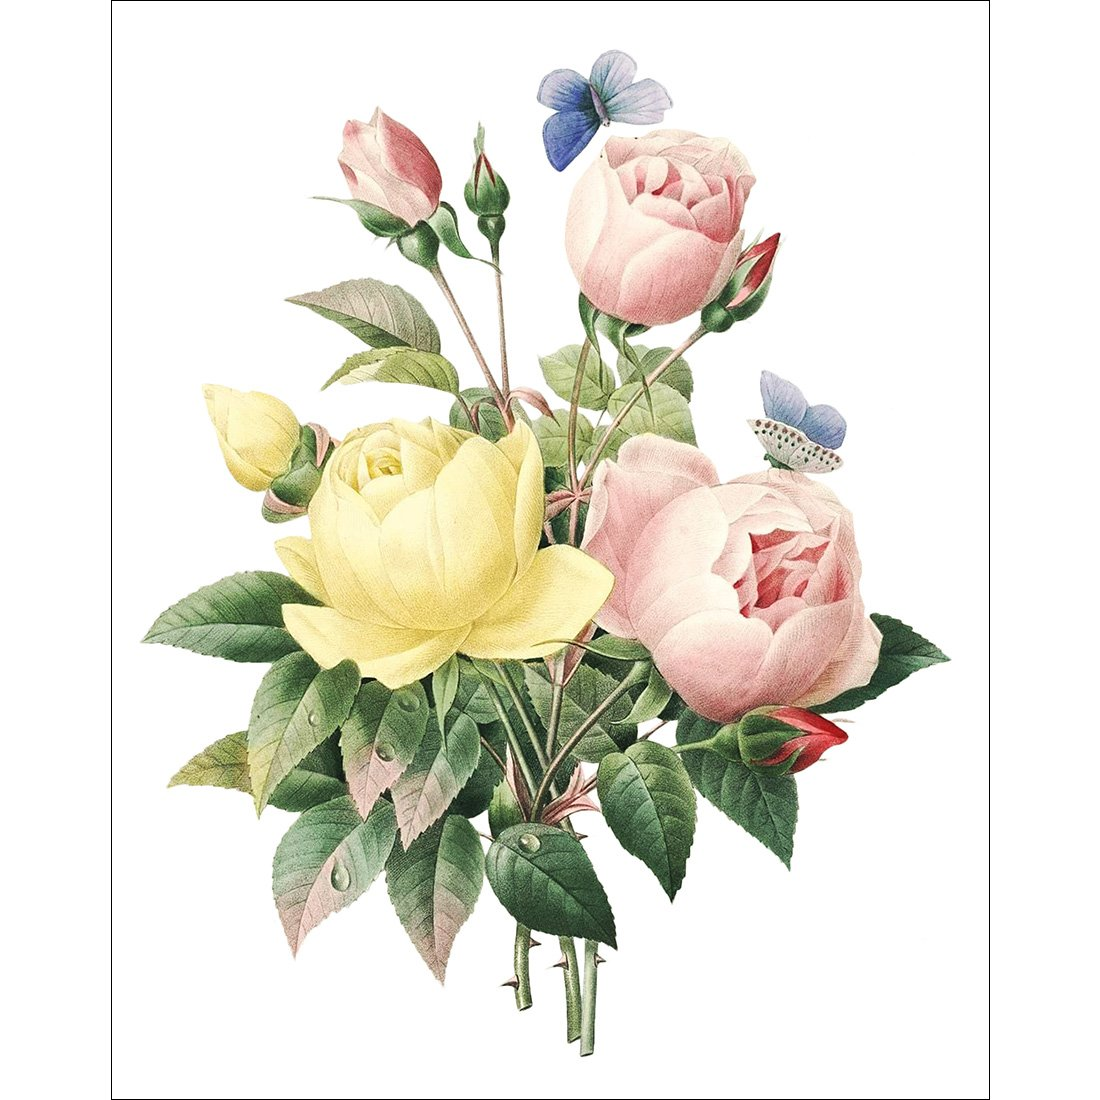 Meishe Art Vintage Poster Print Blooming Flowers Botanical Floral Green Plant Illustrations Colorful Rose Fashion Home Wall Decor Set of 6pcs